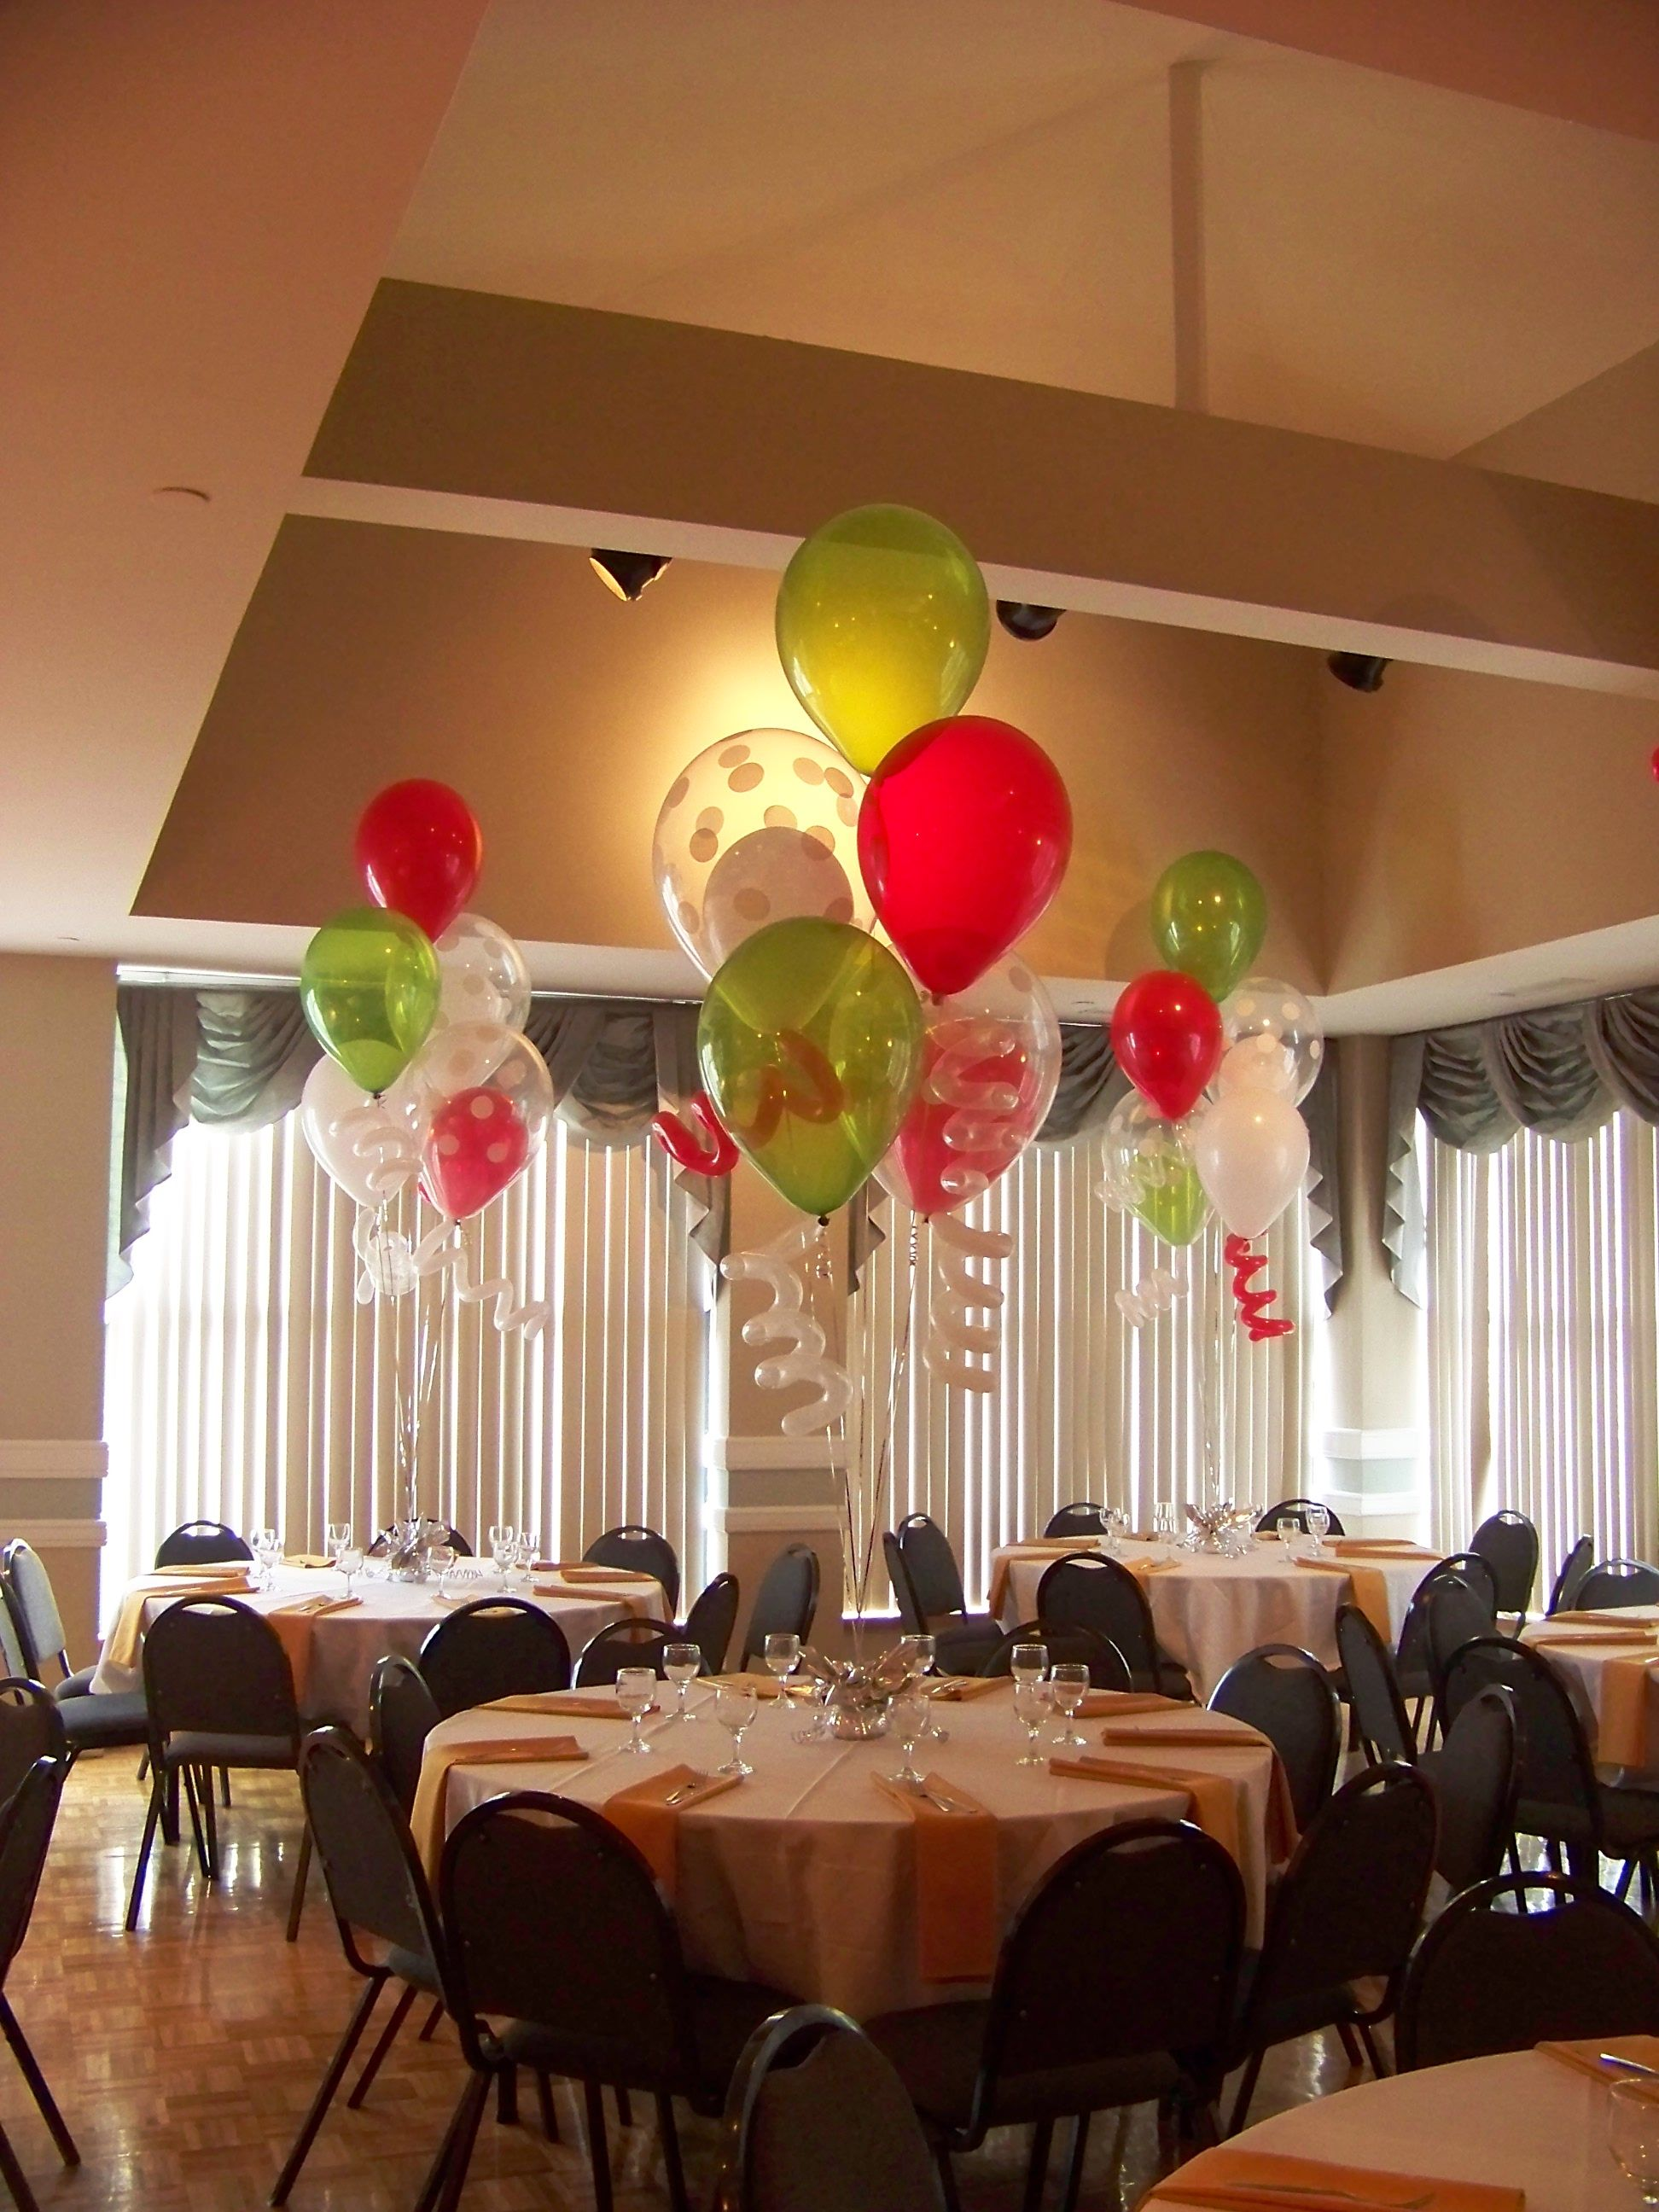 Holiday Party With 16 Latex Balloon Centerpieces & Curlyqs